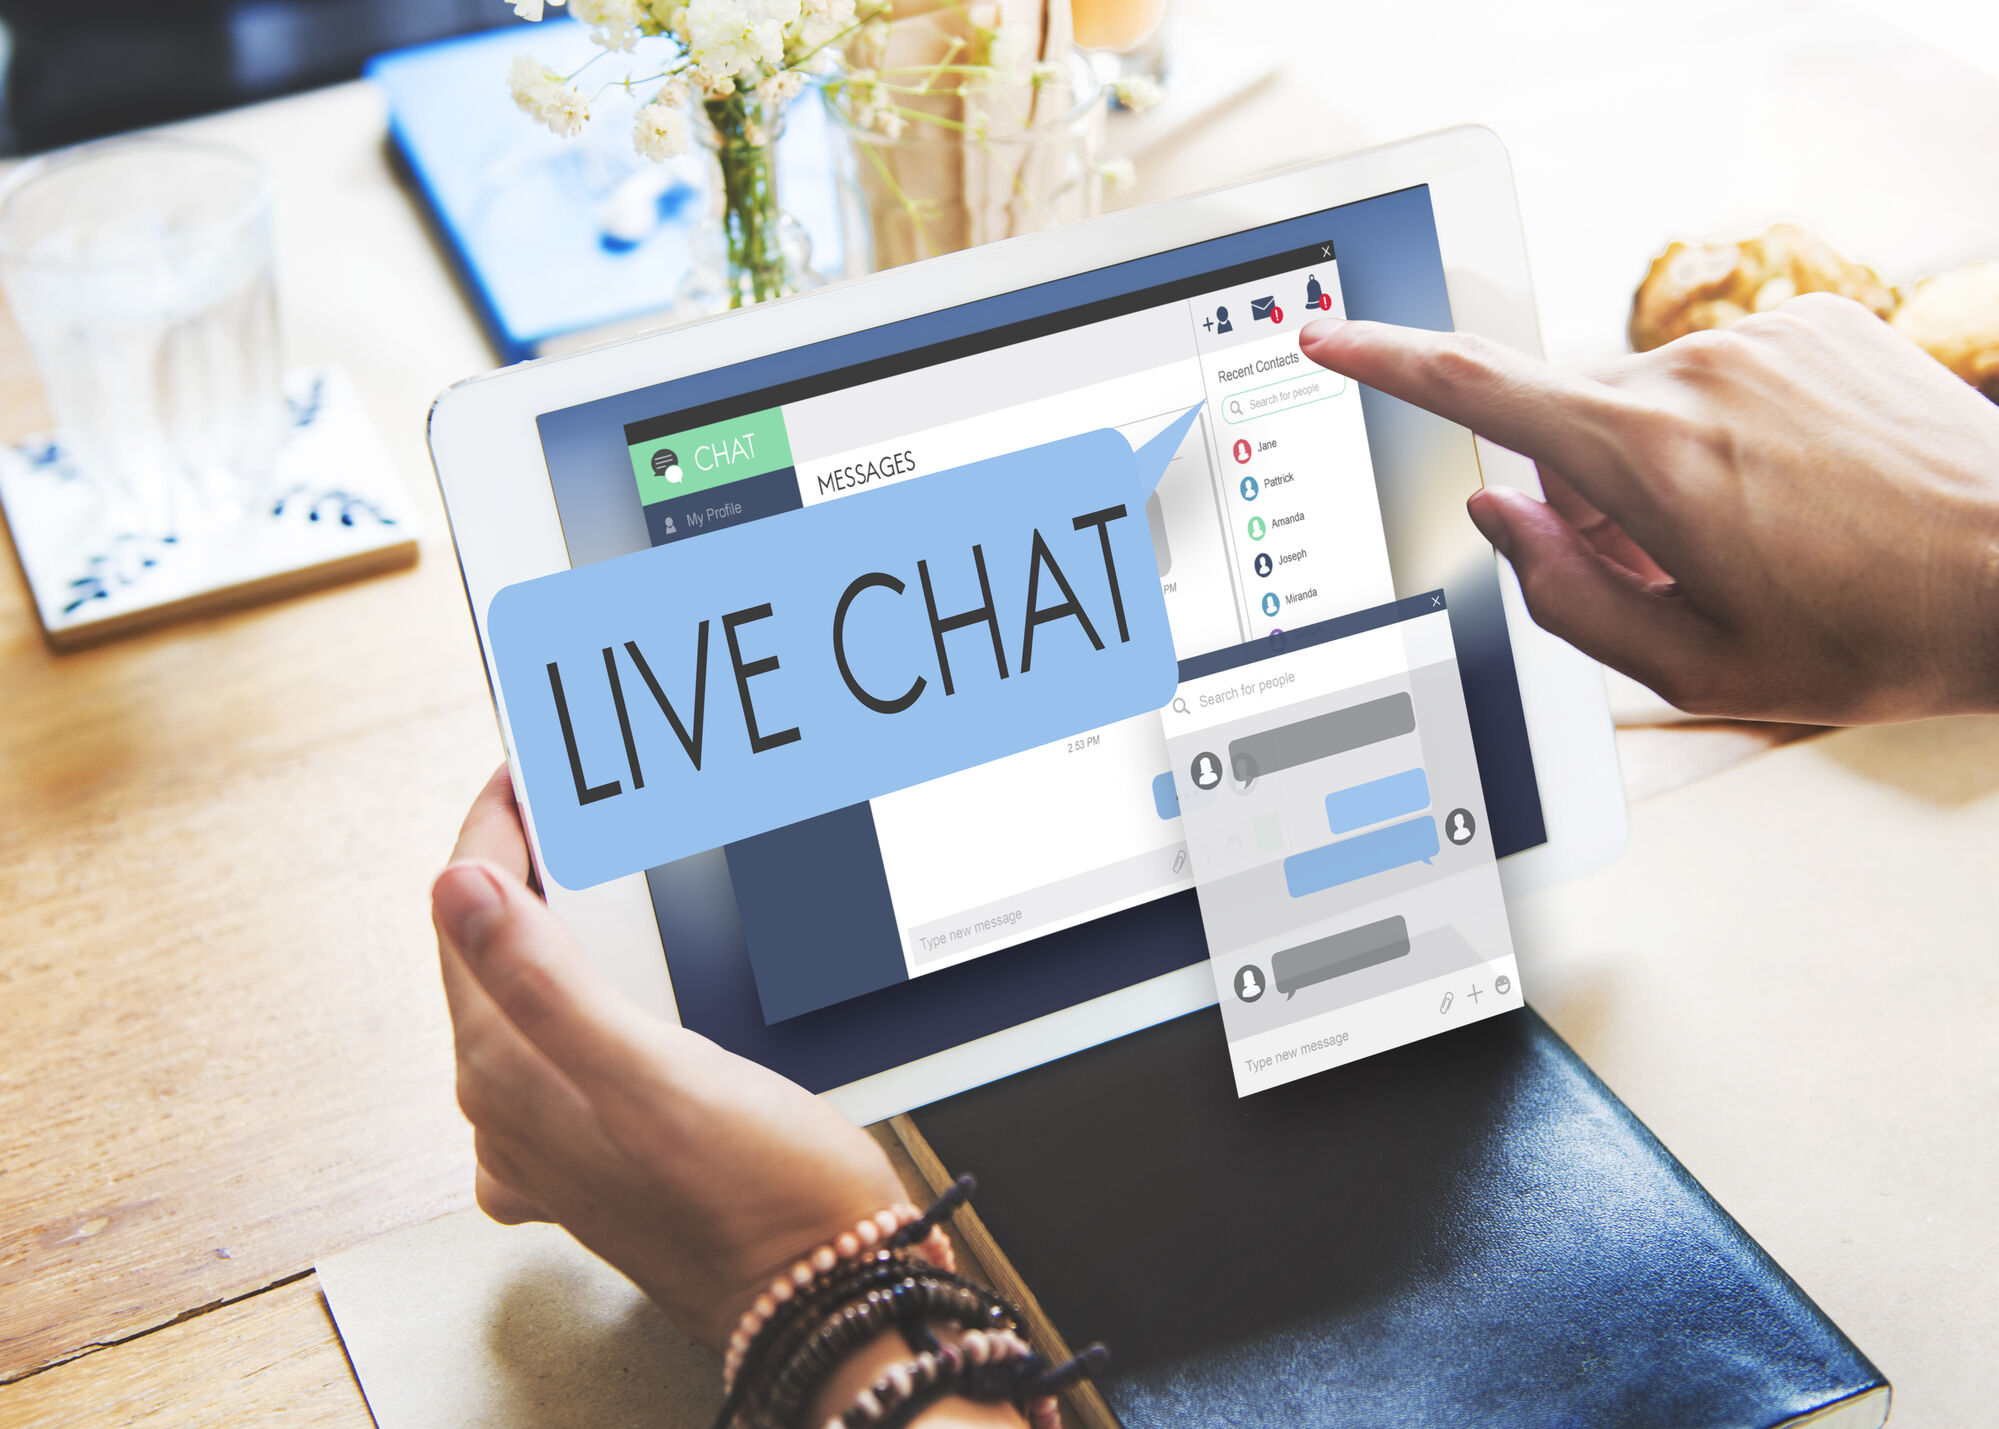 live chat on a laptop